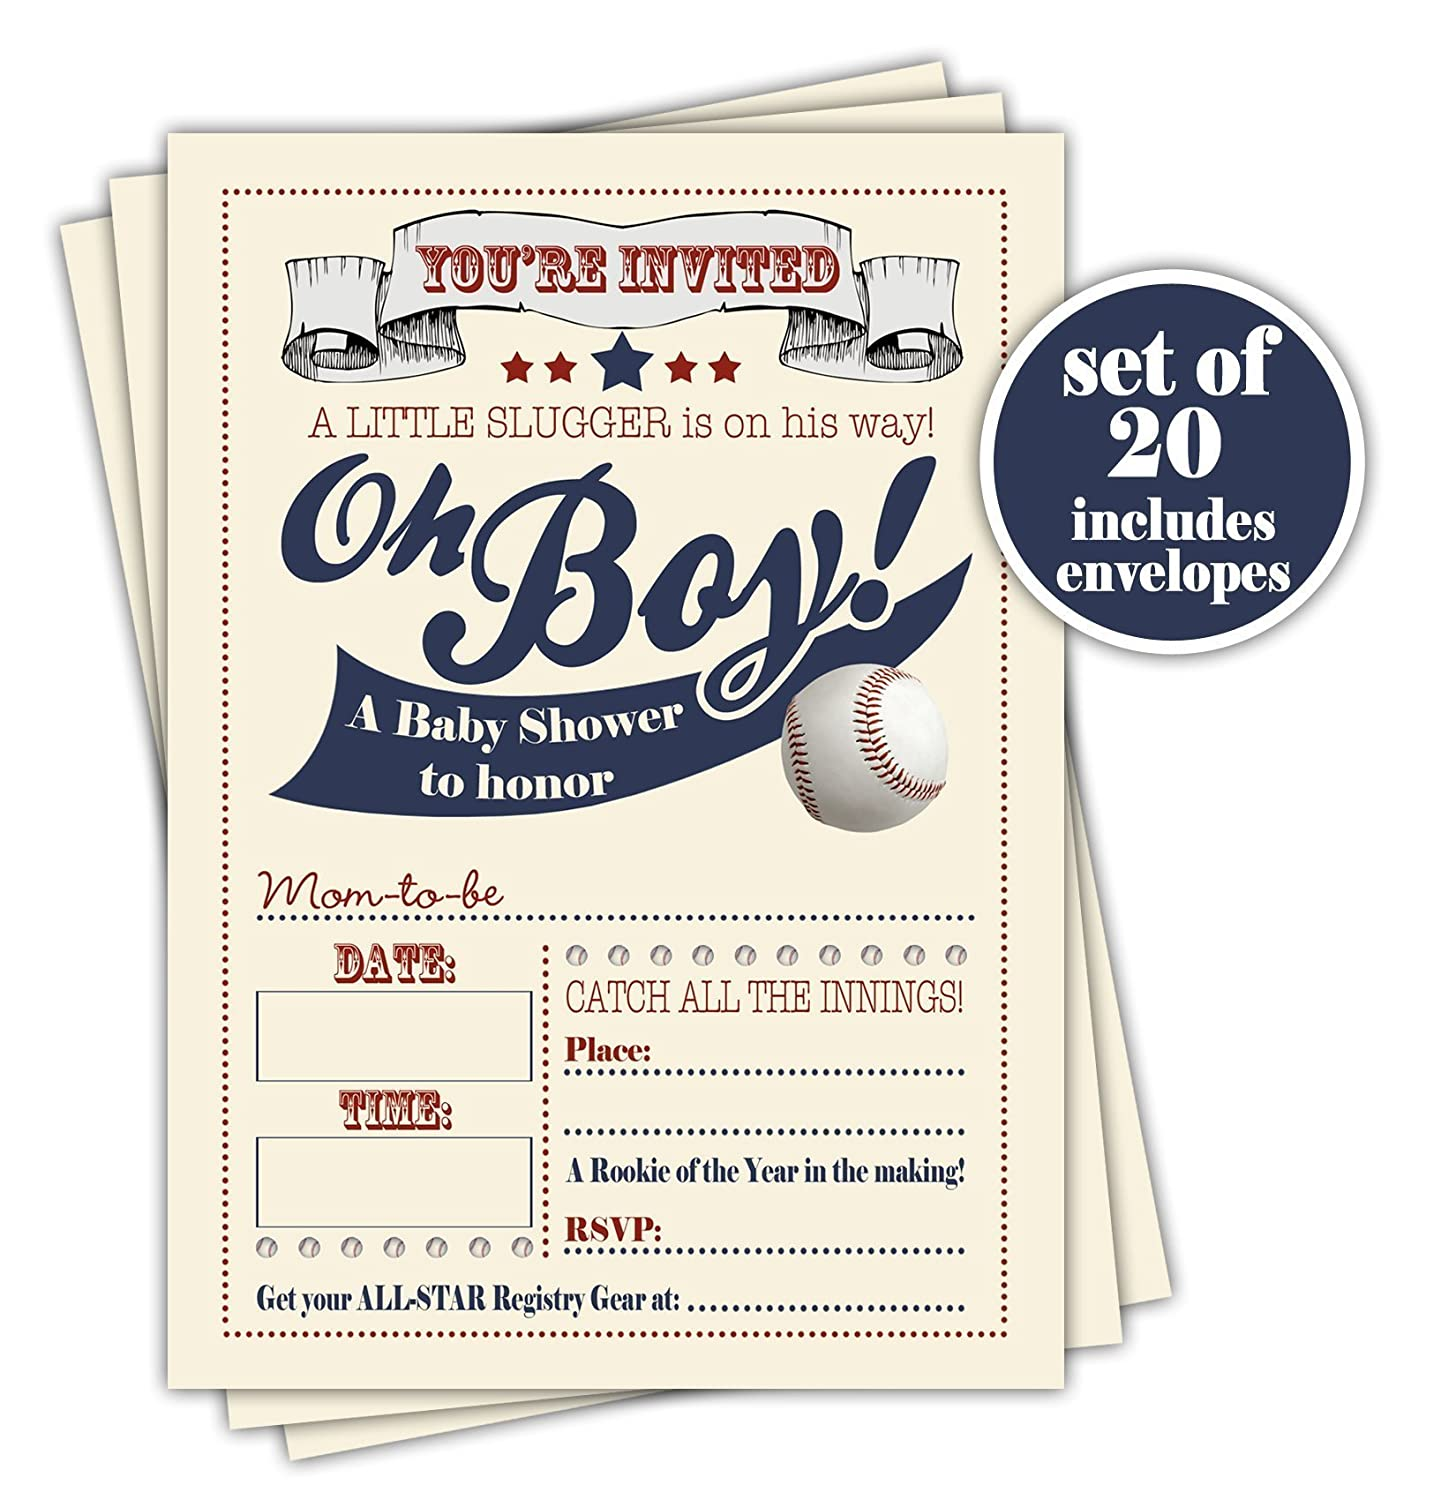 Baseball Baby Shower Invitation - Set of 20 with envelopes